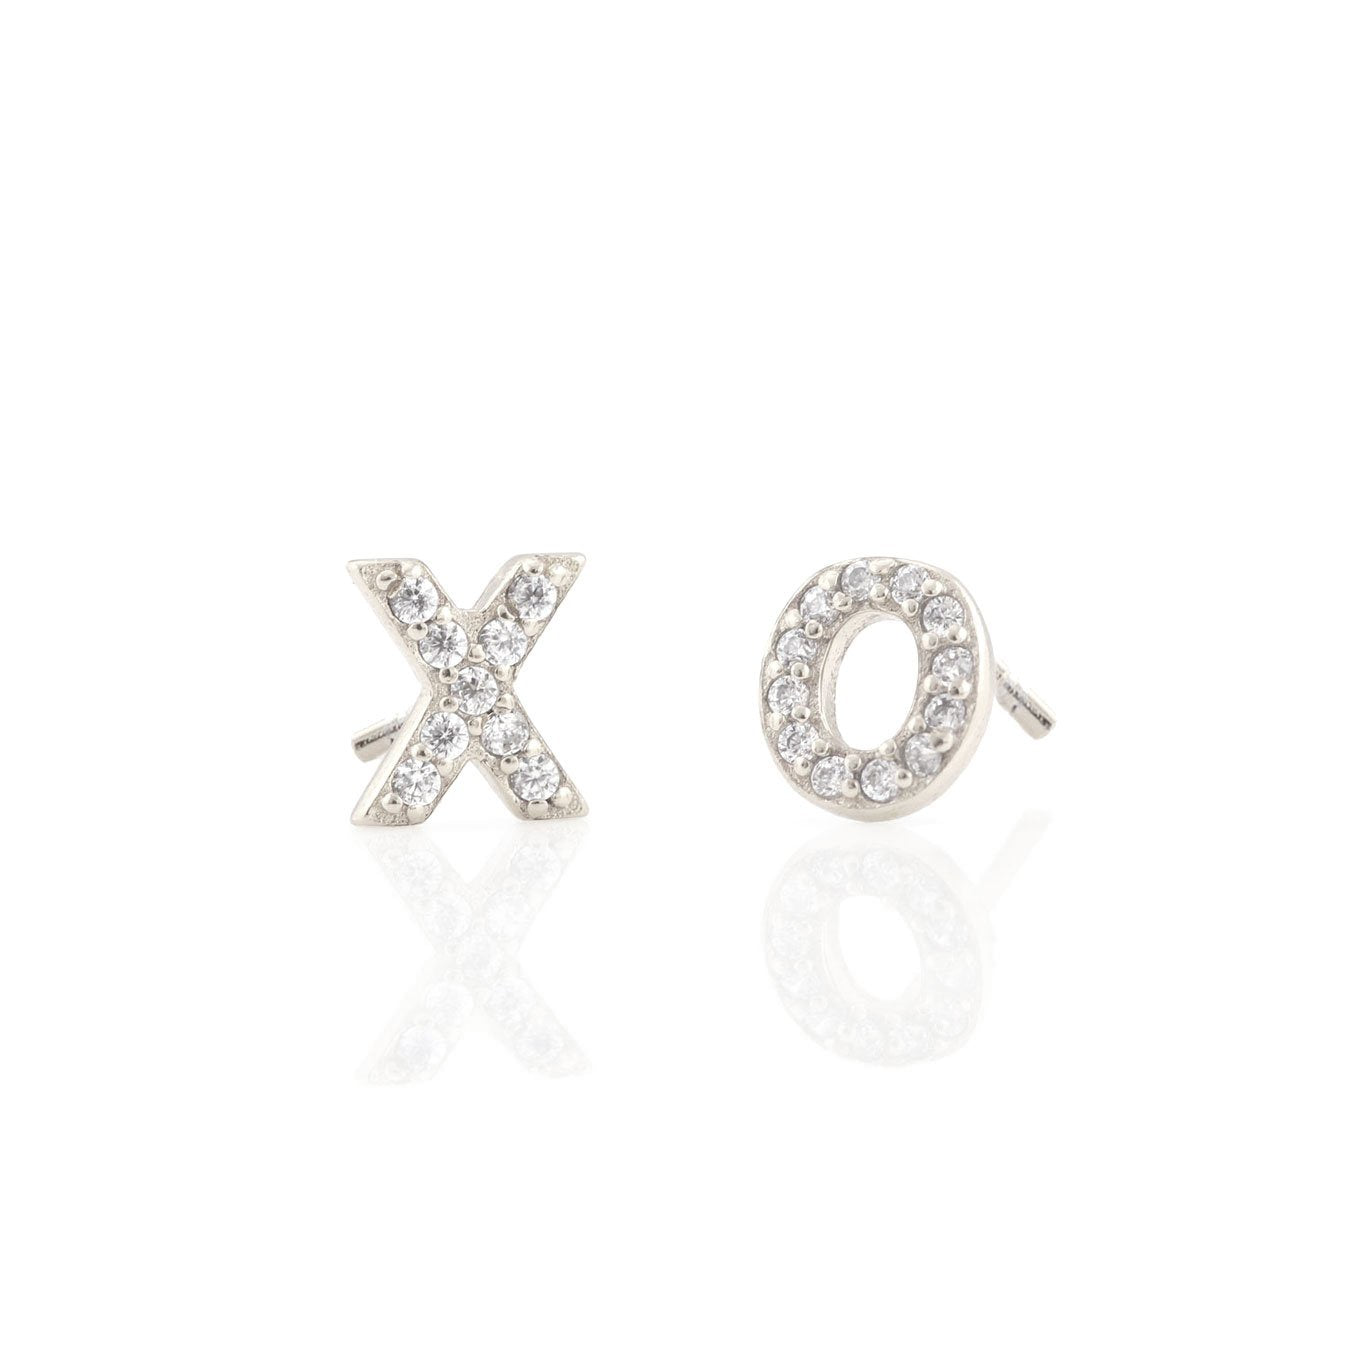 KRIS NATIONS - XO PAVE STUDS IN SILVER